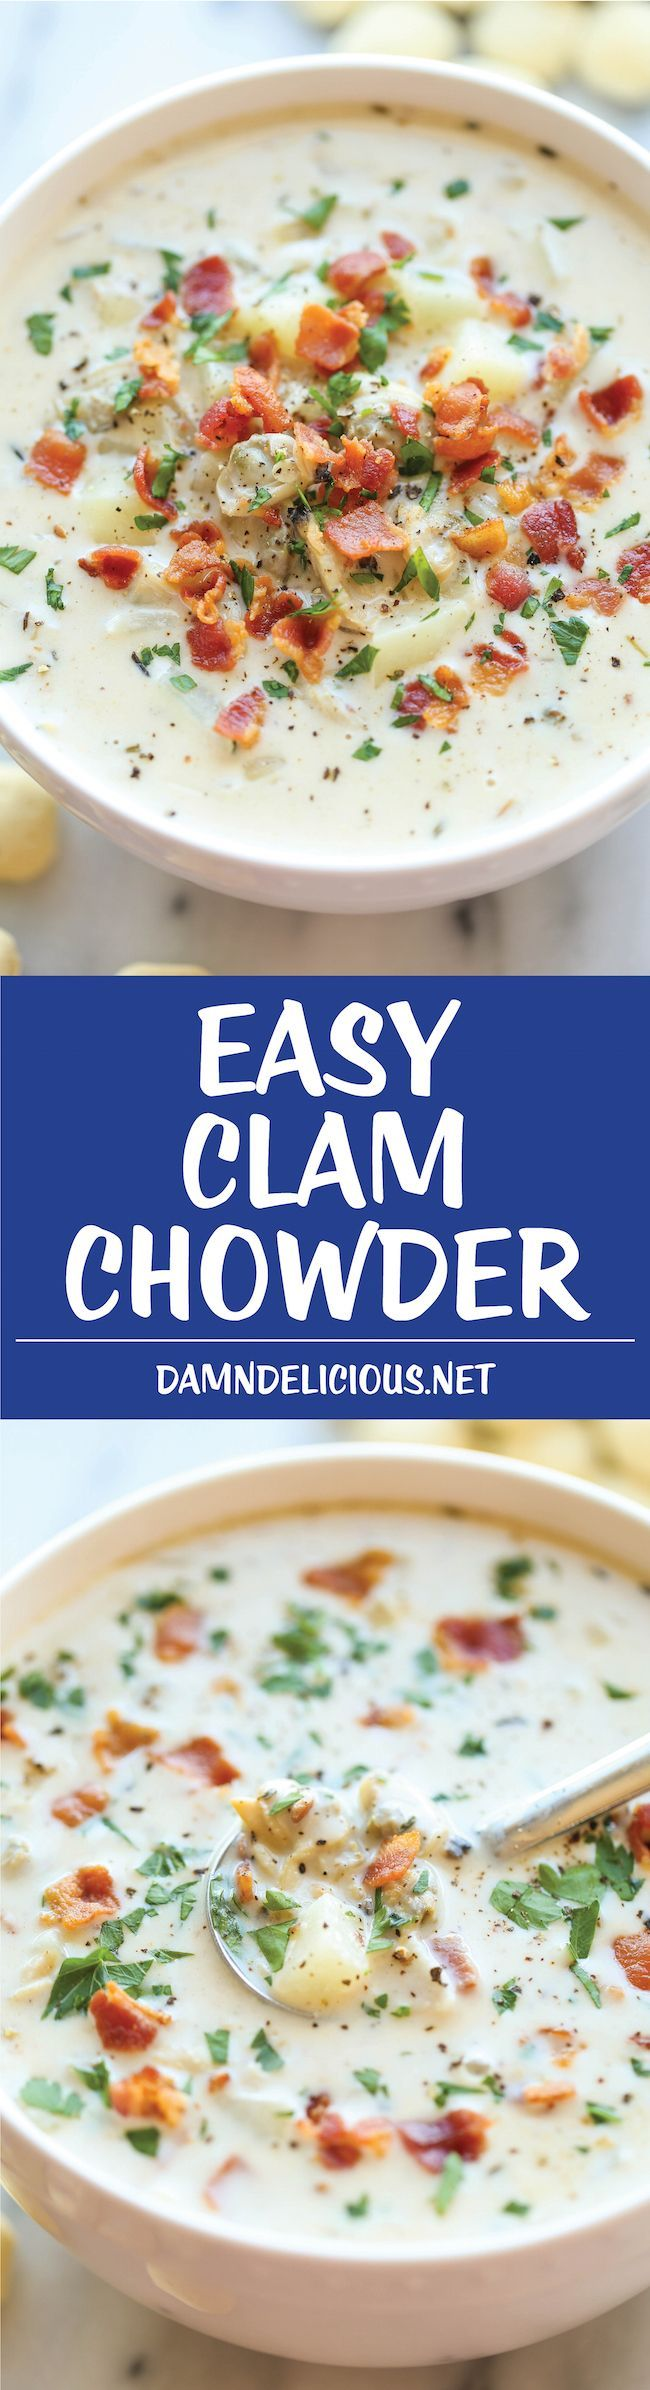 Easy Clam Chowder - Clam Chowder is easier to make than you think! The homemade version is unbelievably creamy, flavorful and chockfull of clams! Yum!